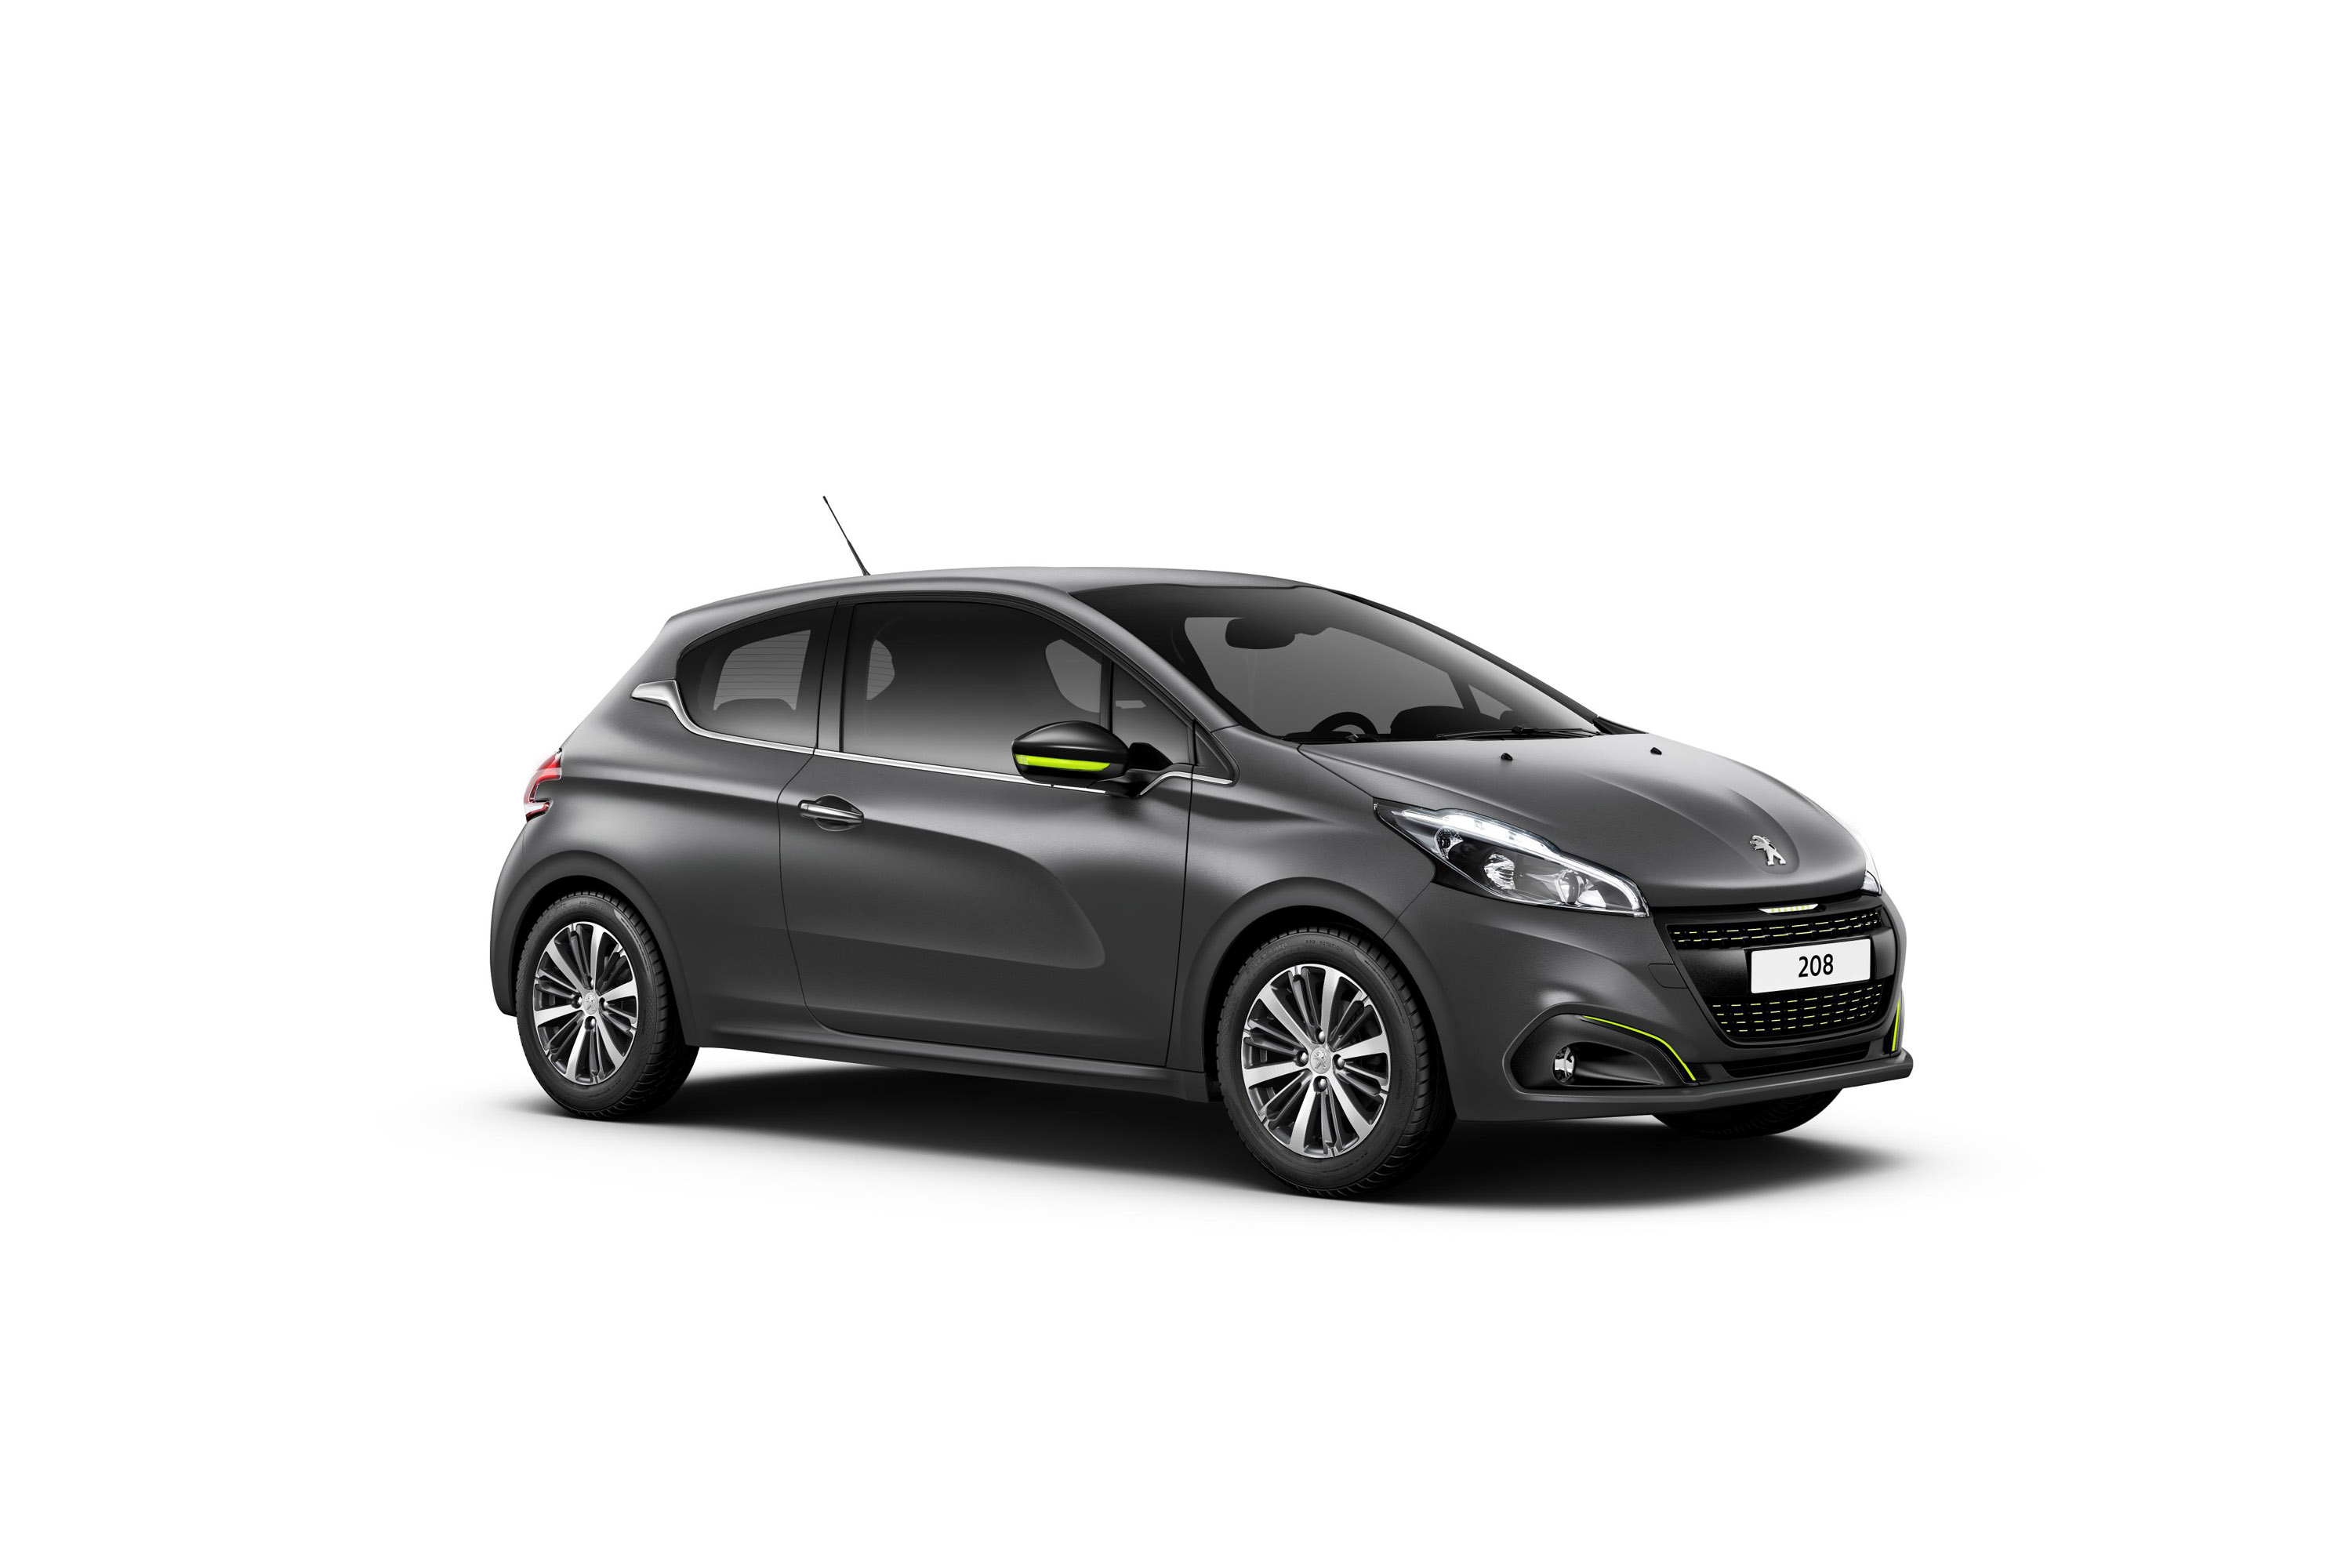 2015 Peugeot 208 Ice Silver And Ice Grey